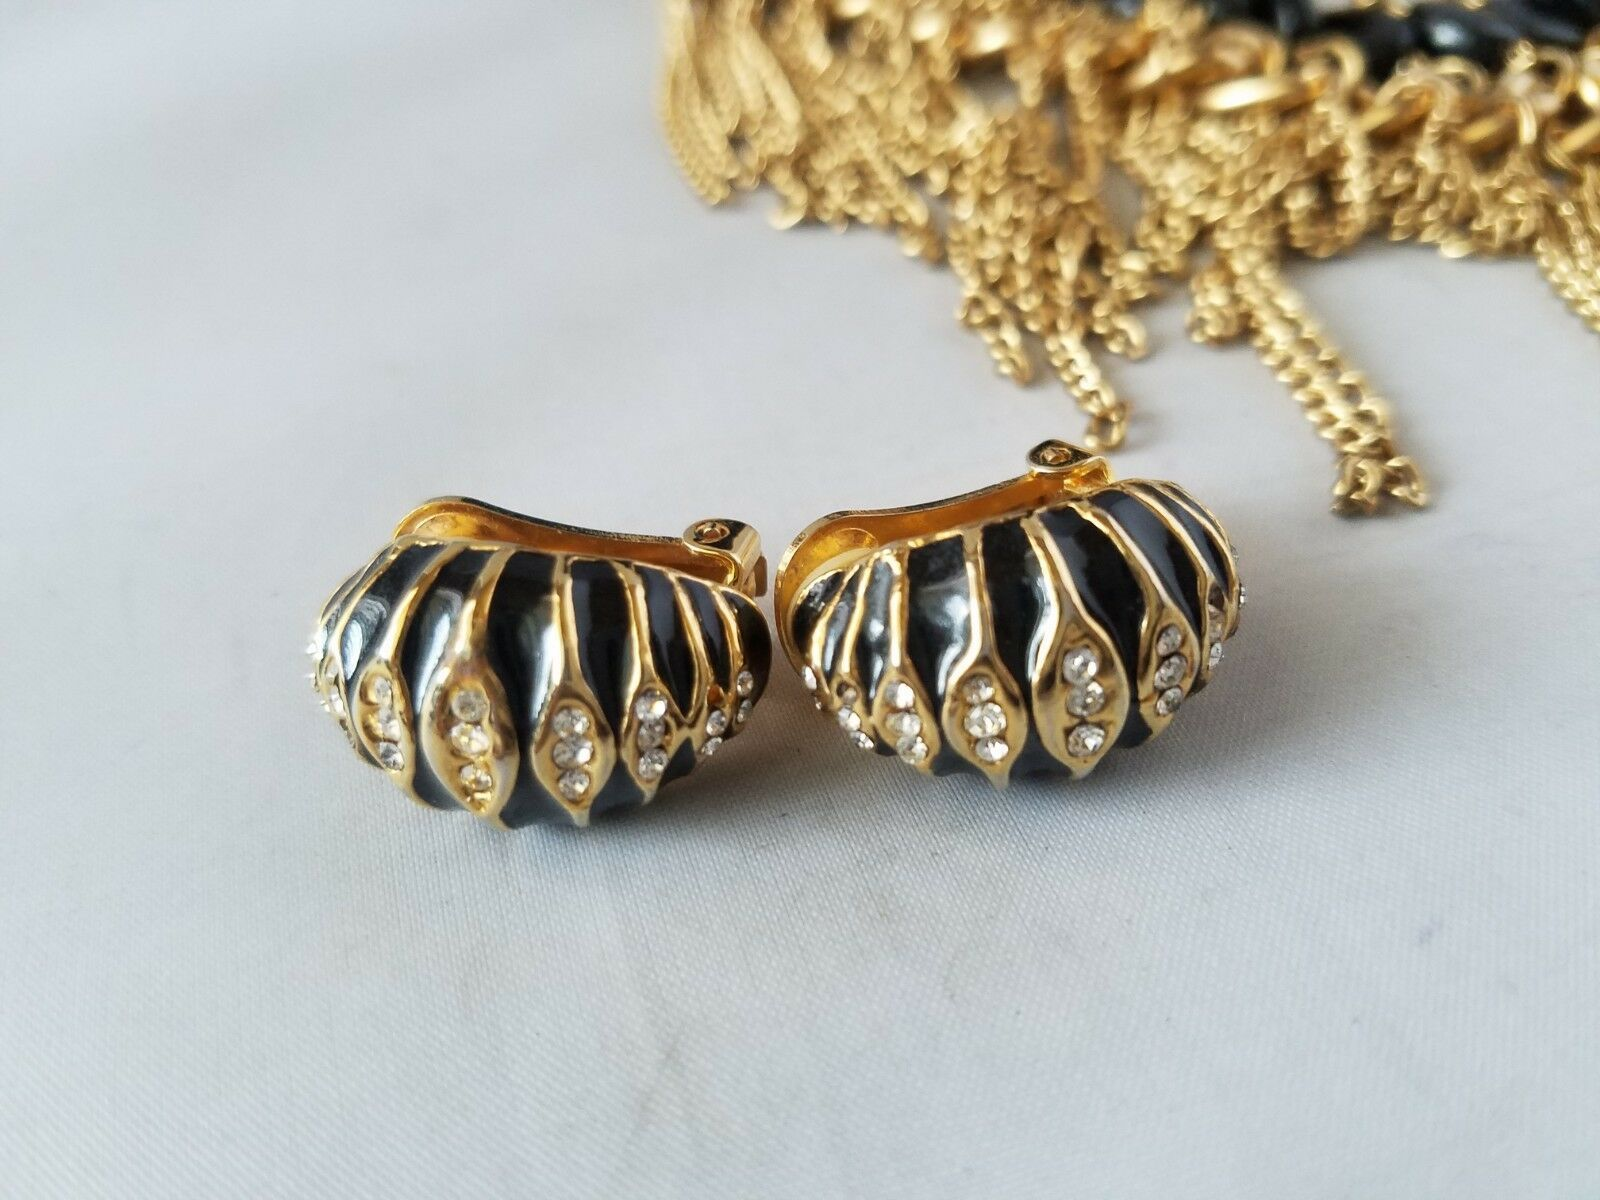 Vintage Fashion Statement Necklace Collar Gold Tone Black & Matching Earrings